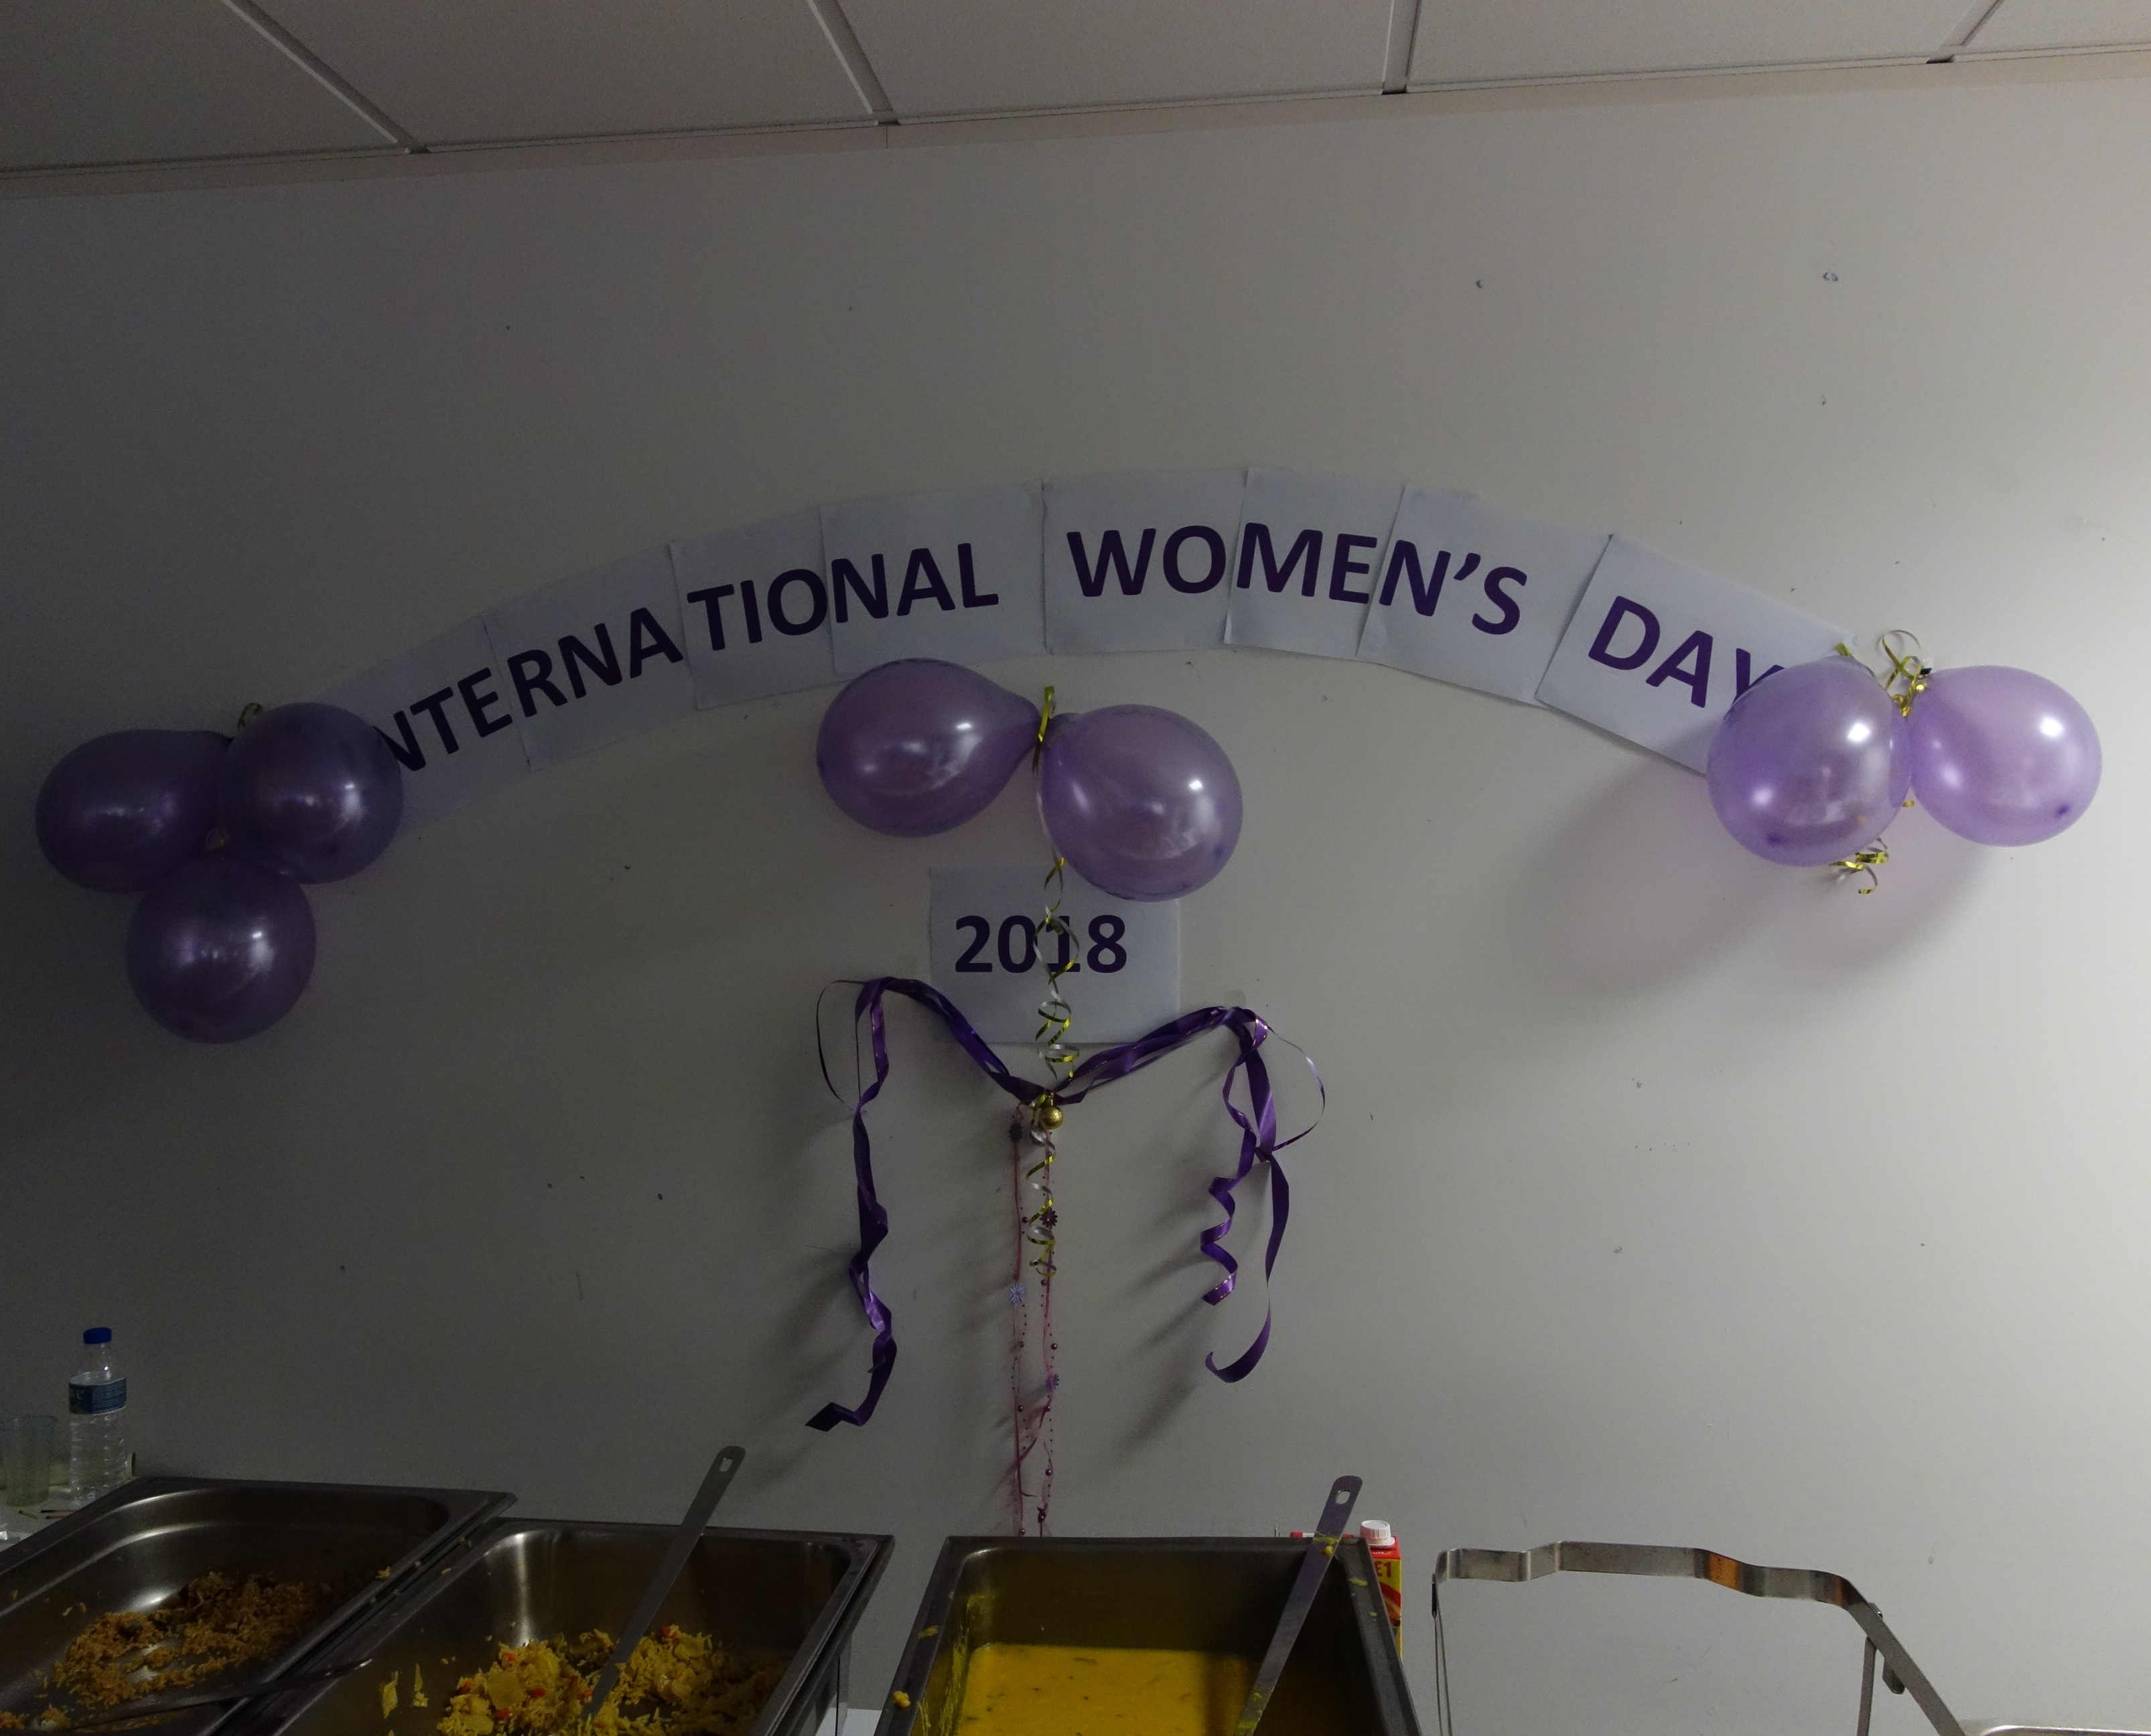 Banner on wall during International Women's Day 2018